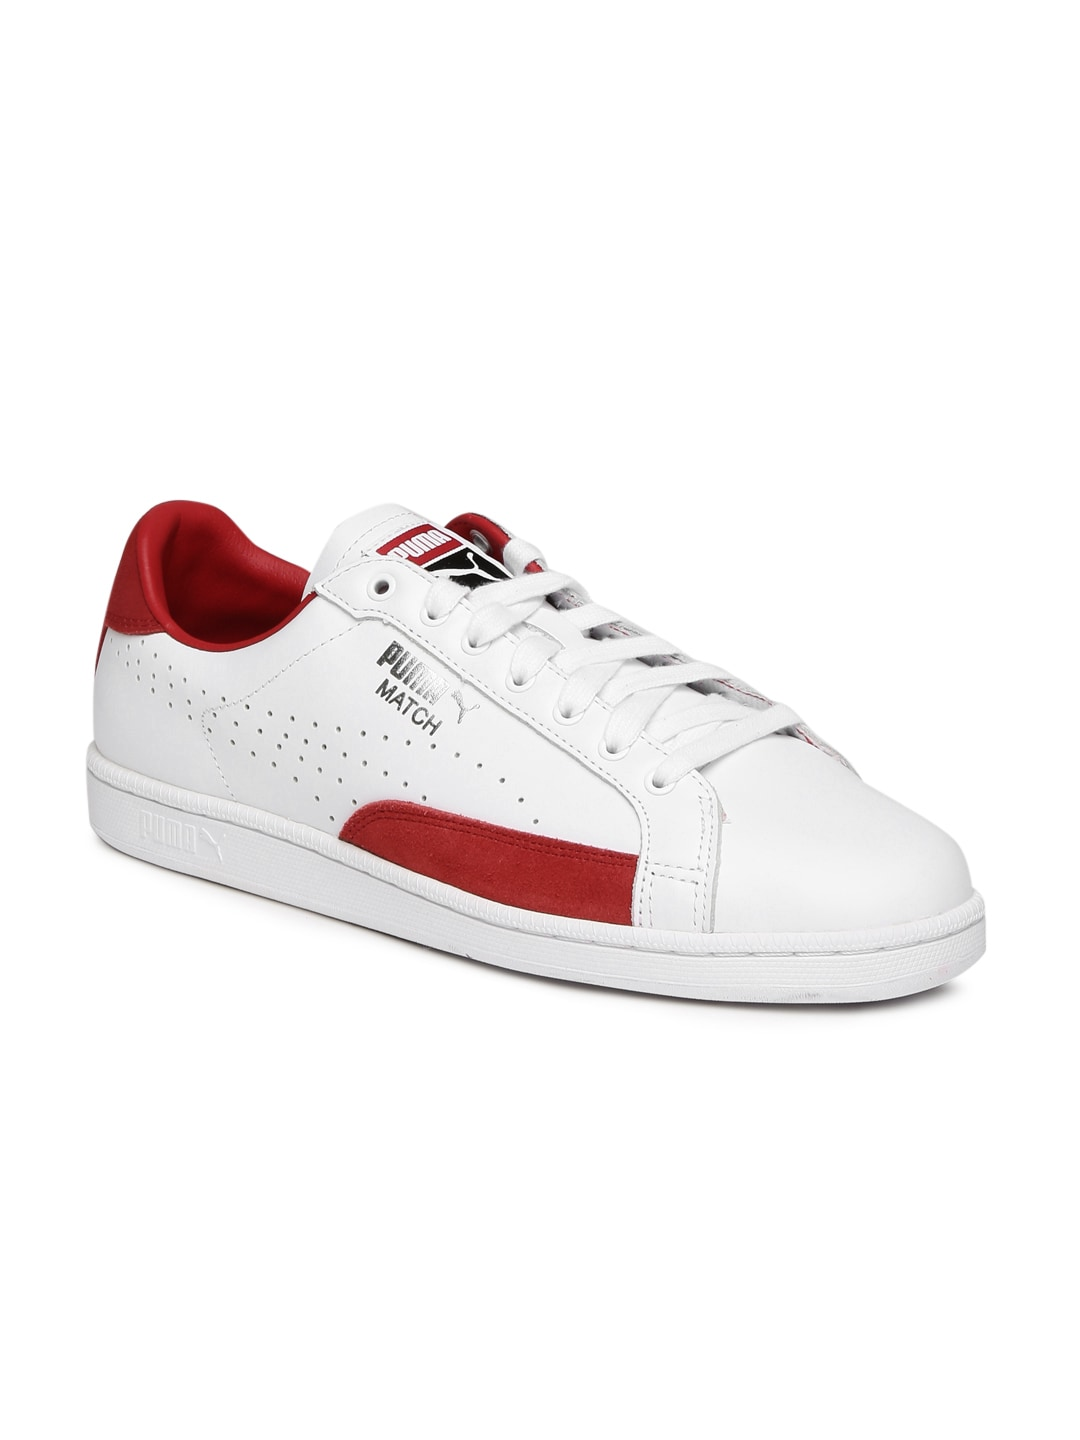 cf0f91a6f095 Puma Shoe For Men Casual Shoes Apparel Set - Buy Puma Shoe For Men Casual  Shoes Apparel Set online in India